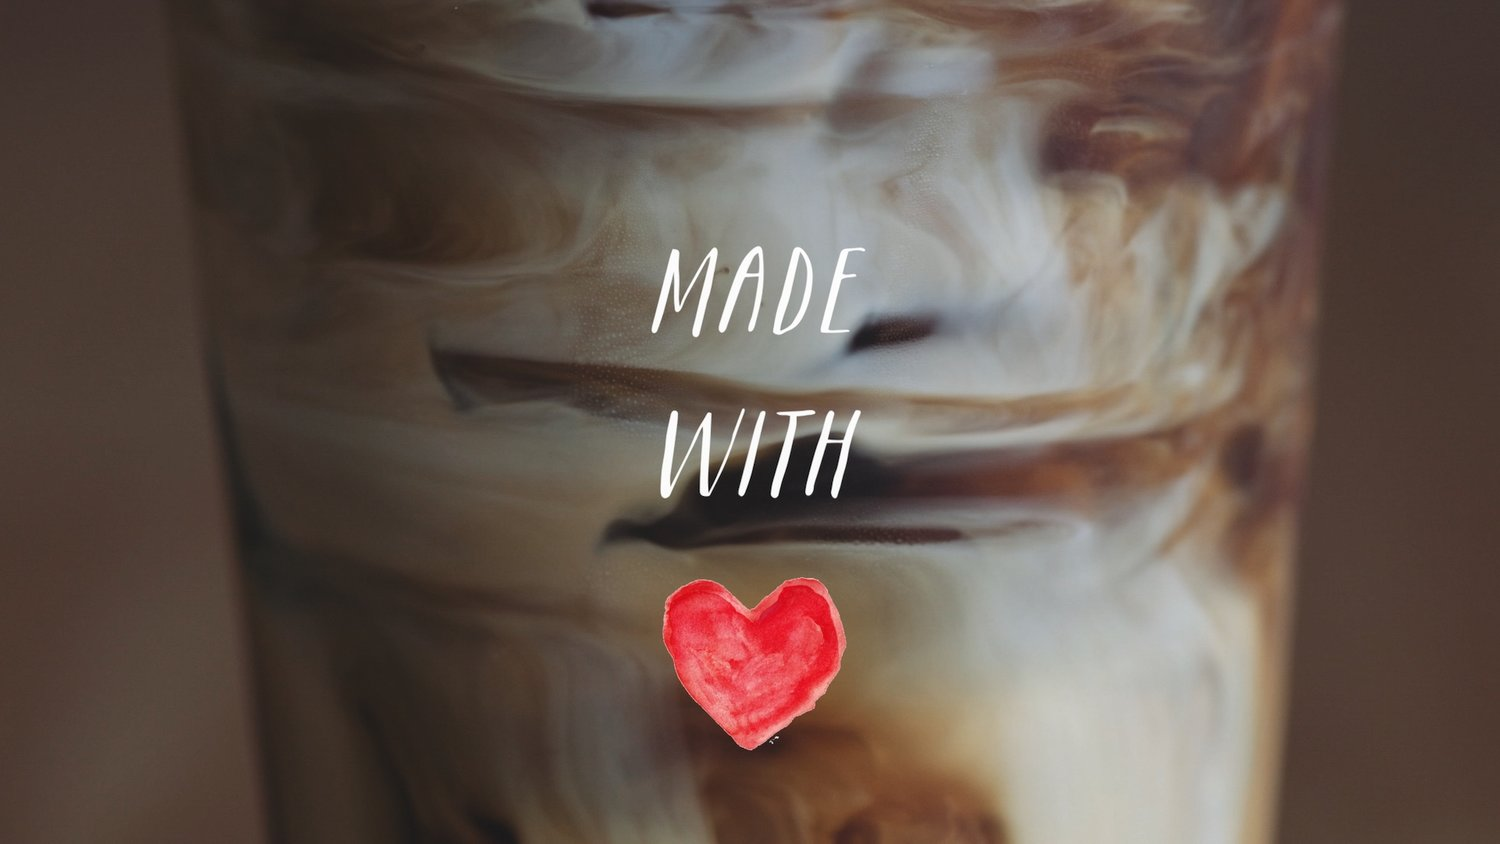 MADE WITH LOVE CUP